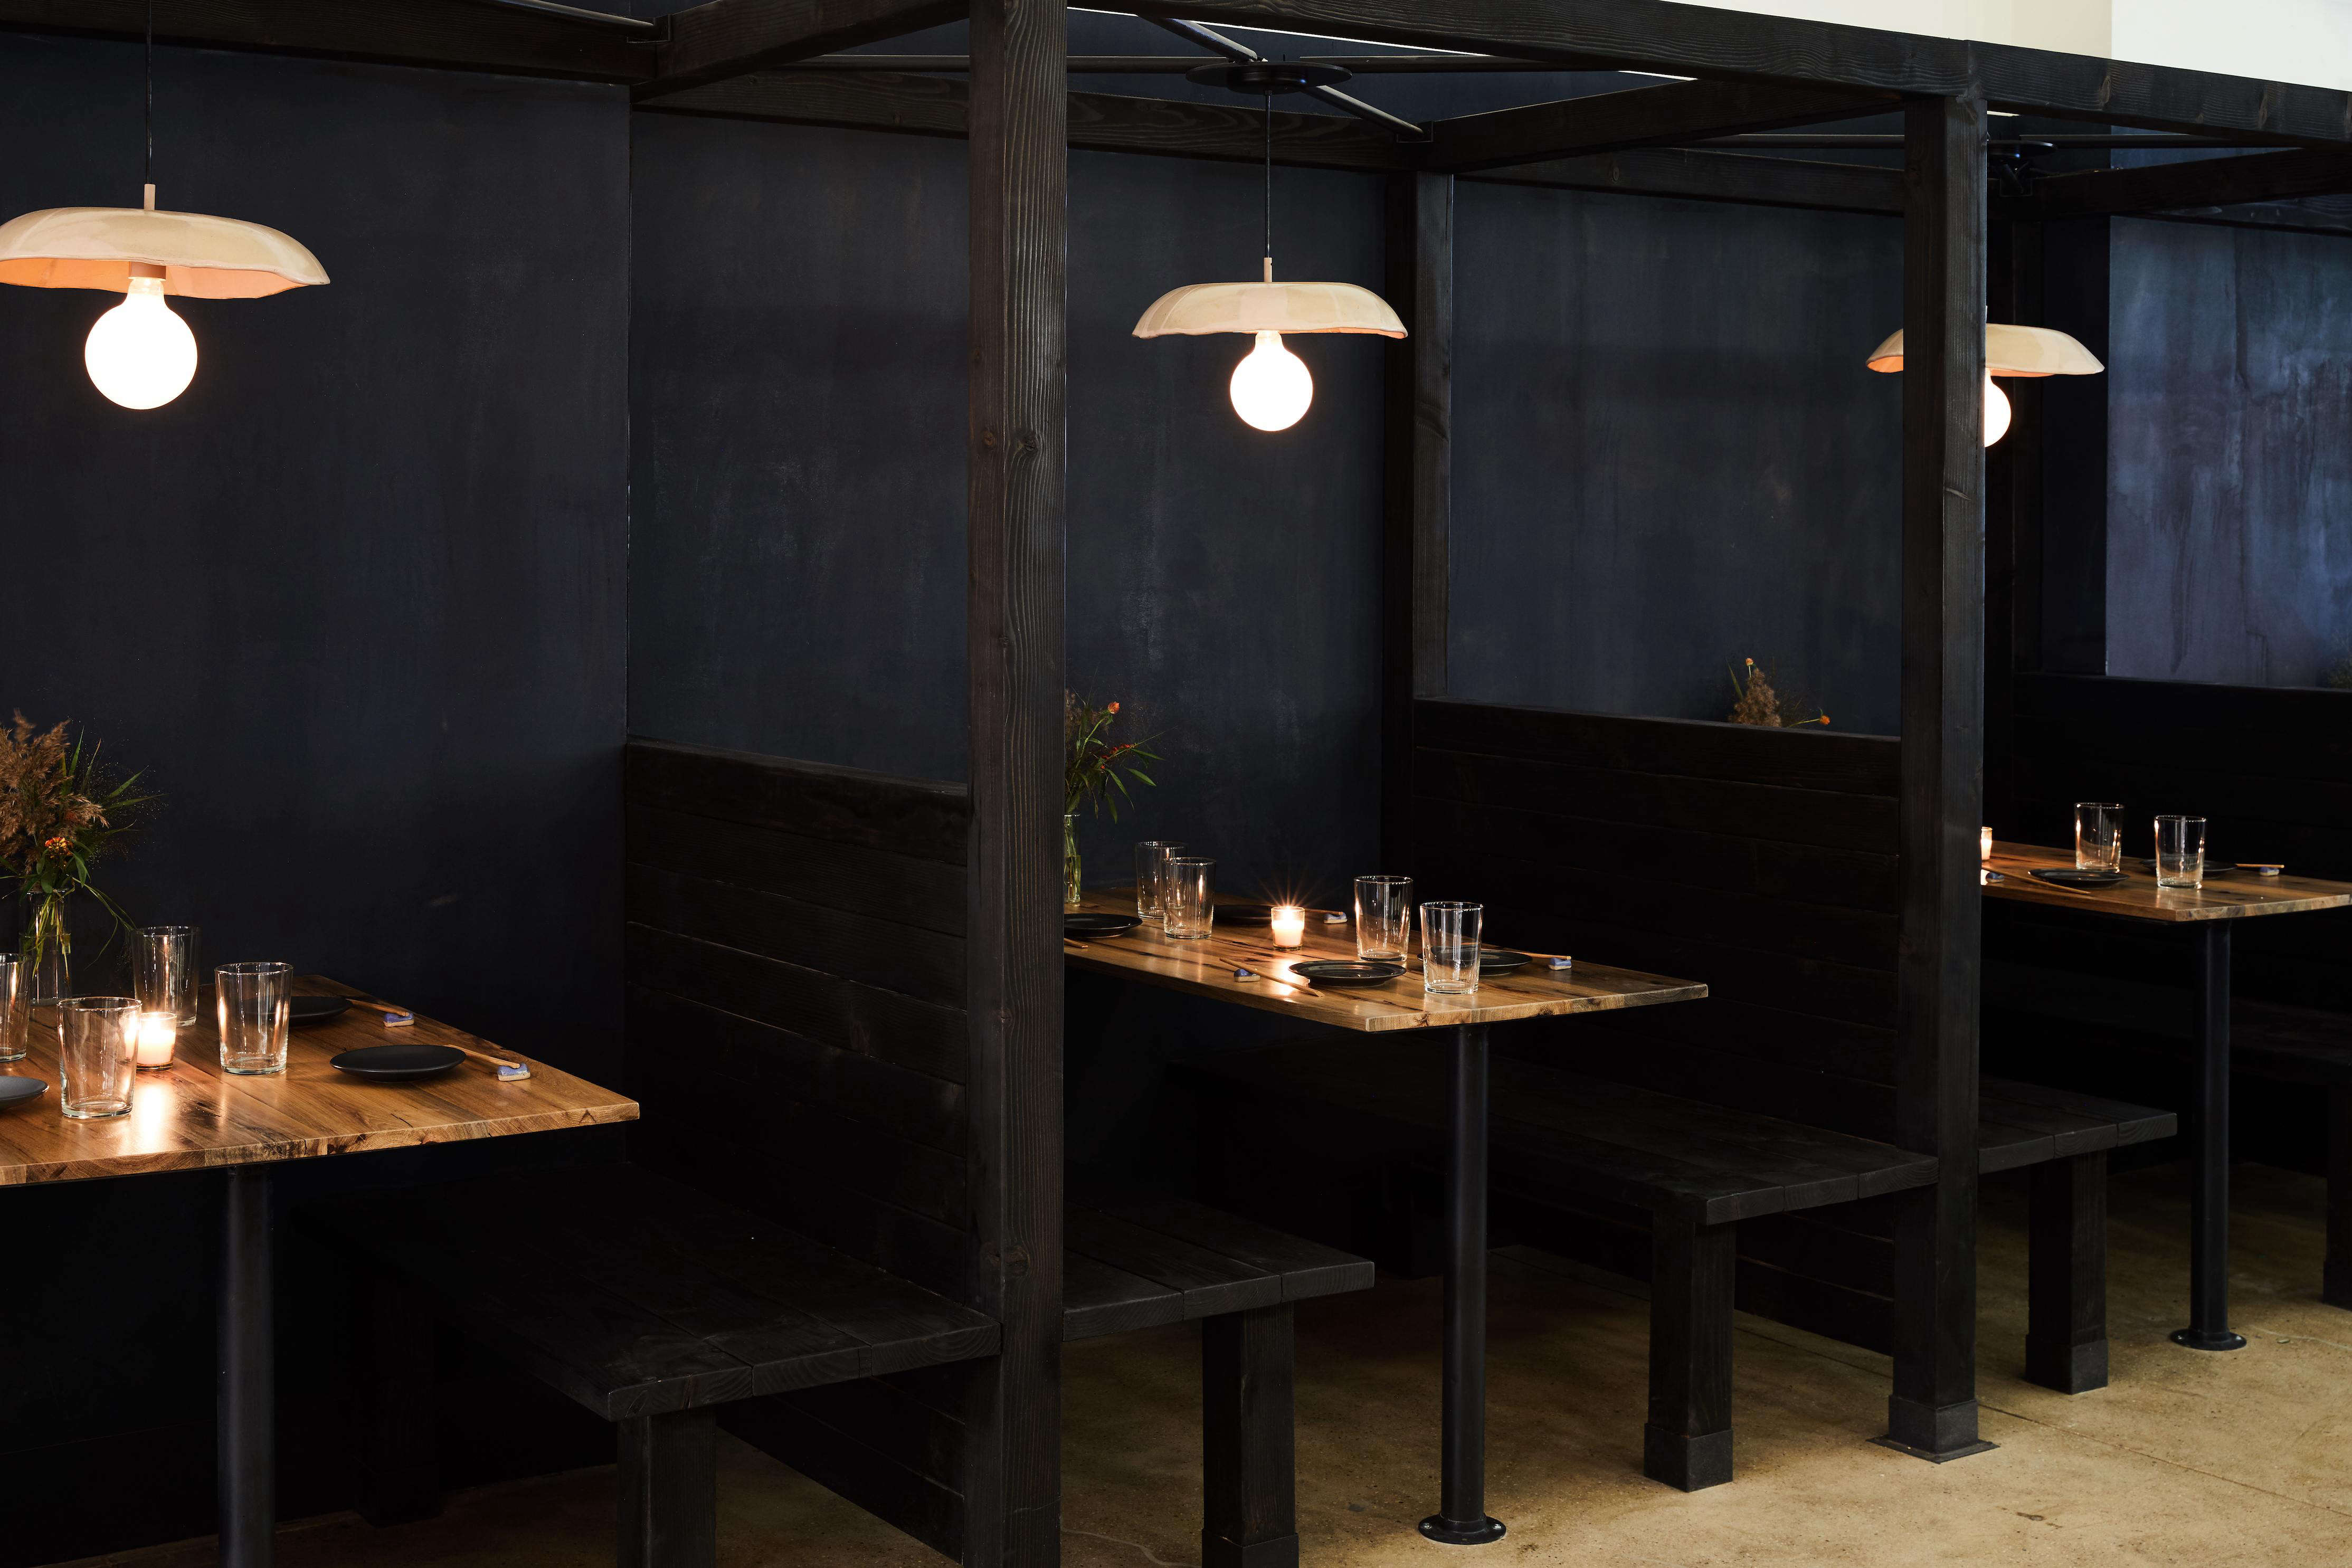 9-design-ideas-for-small-dark-rooms-from tonchin-new-york